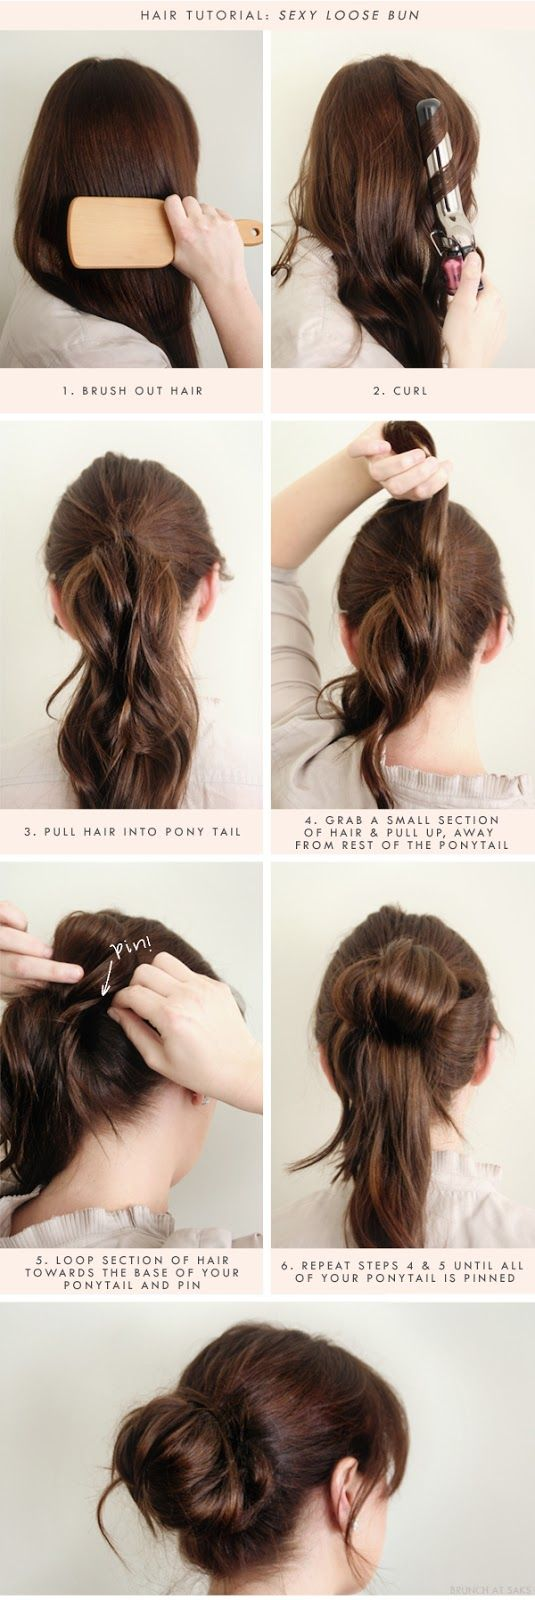 115 best Quick and Easy Hairstyles images on Pinterest